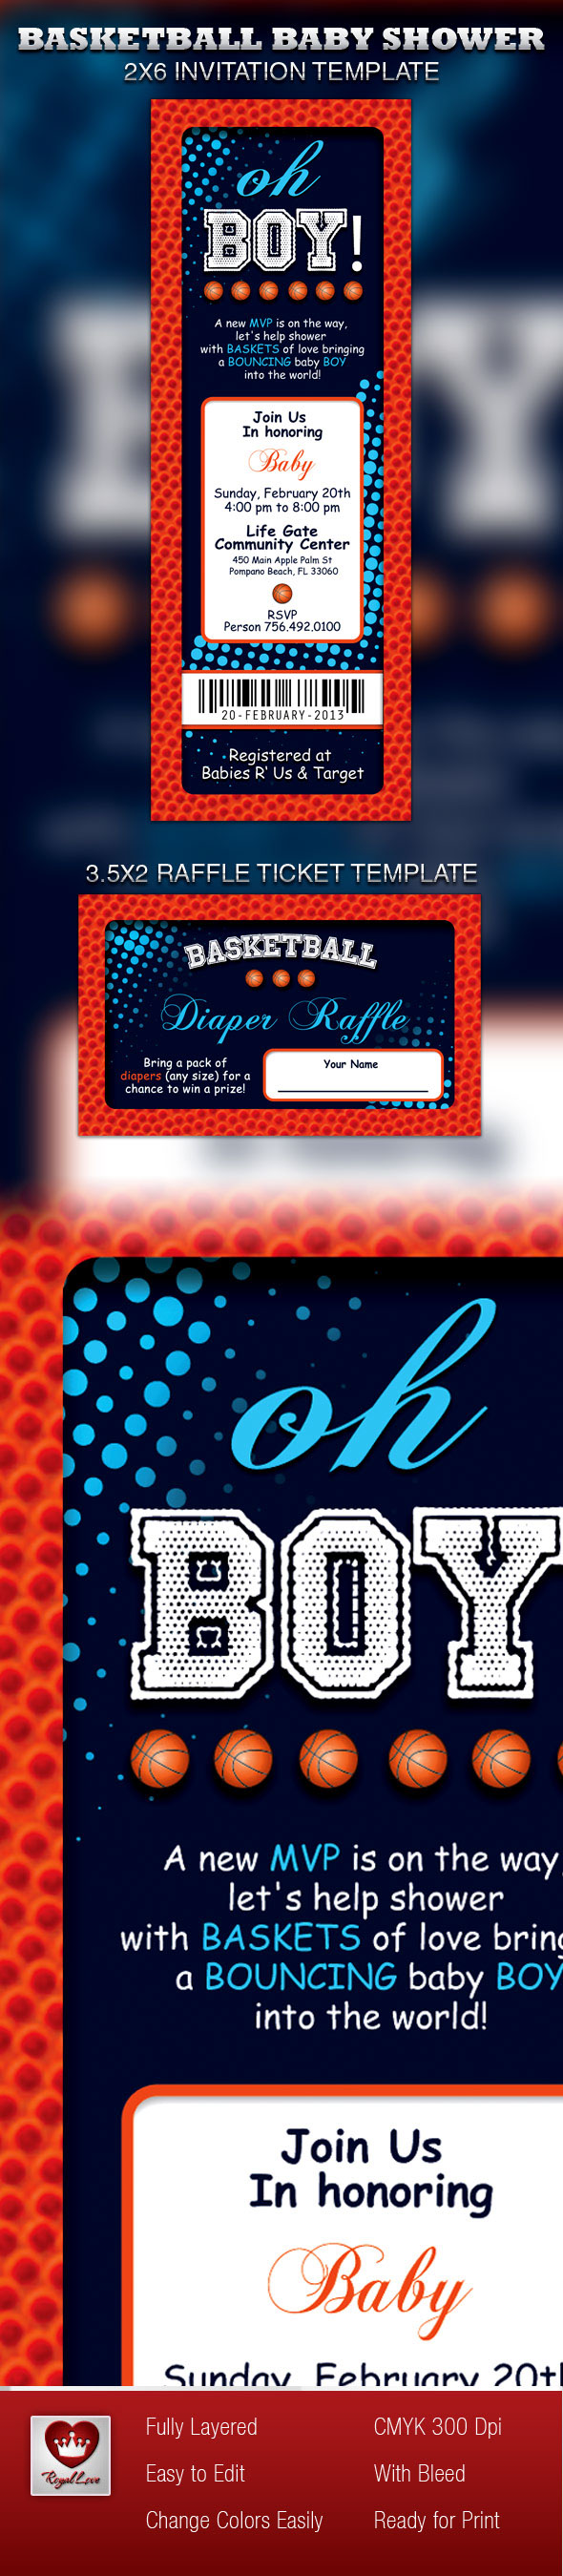 Basketball Baby Shower Invitation Ticket on Behance